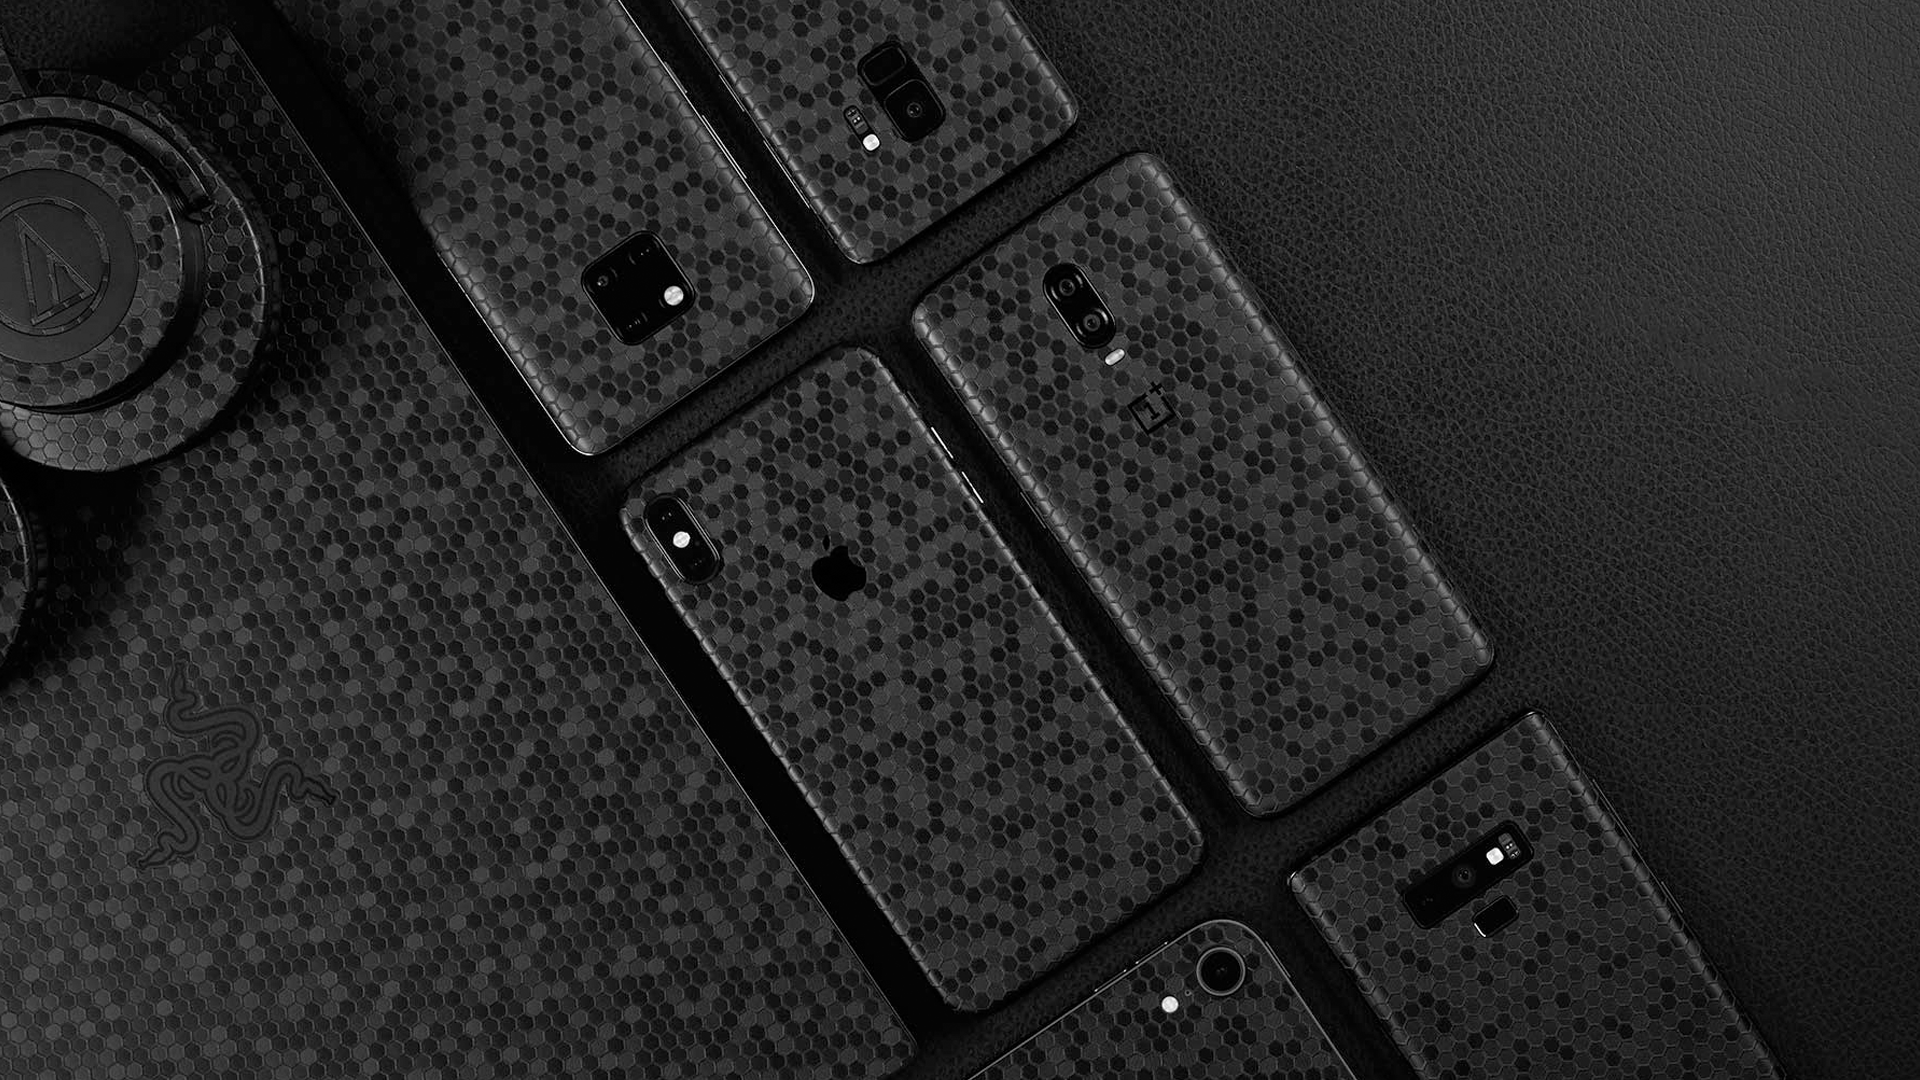 dbrand's new swarm skin on cellphones and laptops